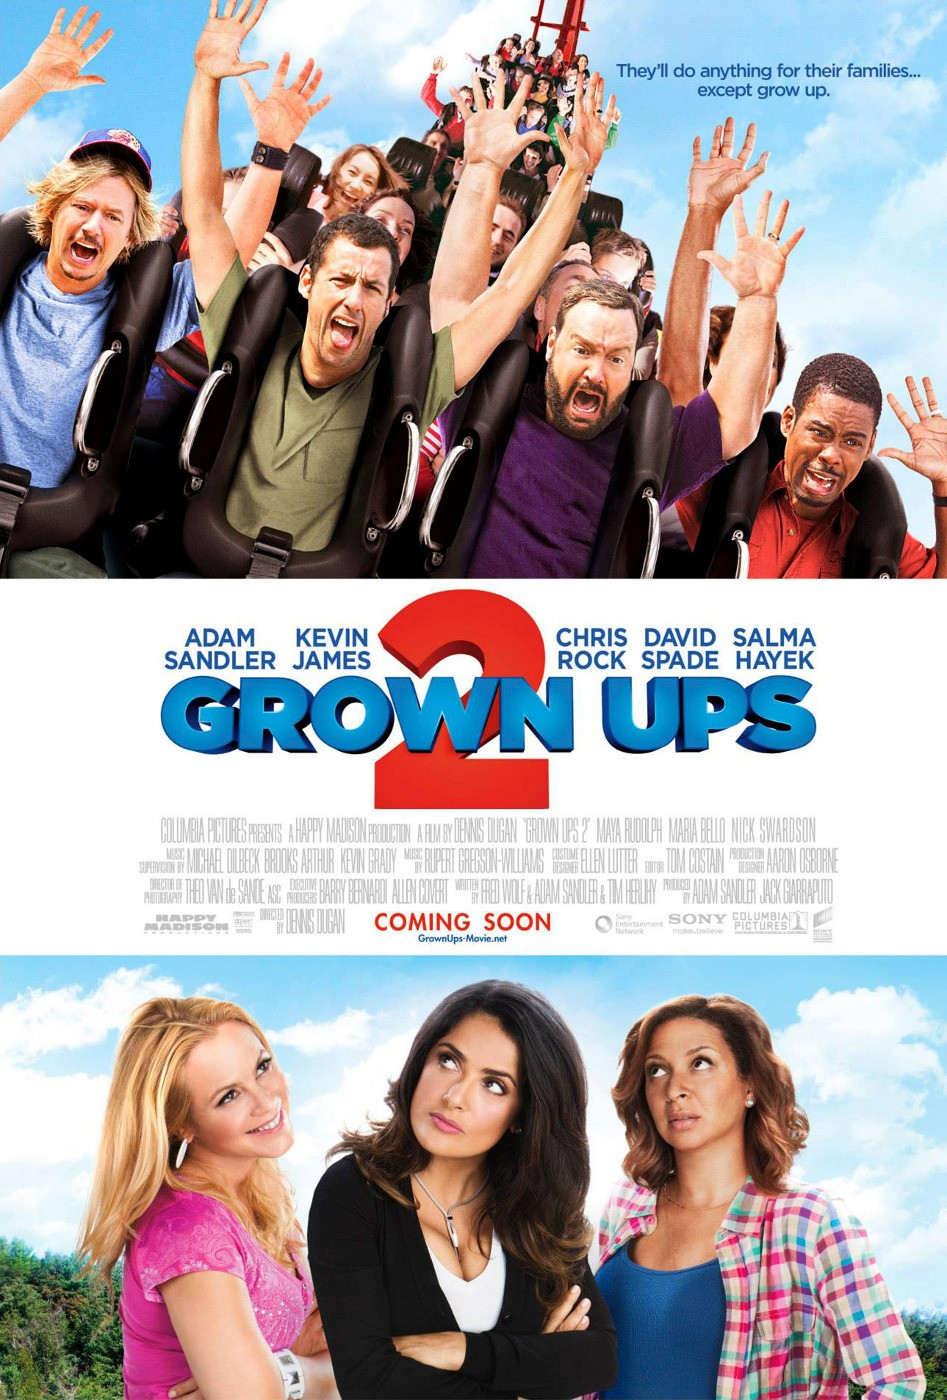 Grown ups 2 dvd release date redbox netflix itunes amazon for New kid movies coming out this weekend